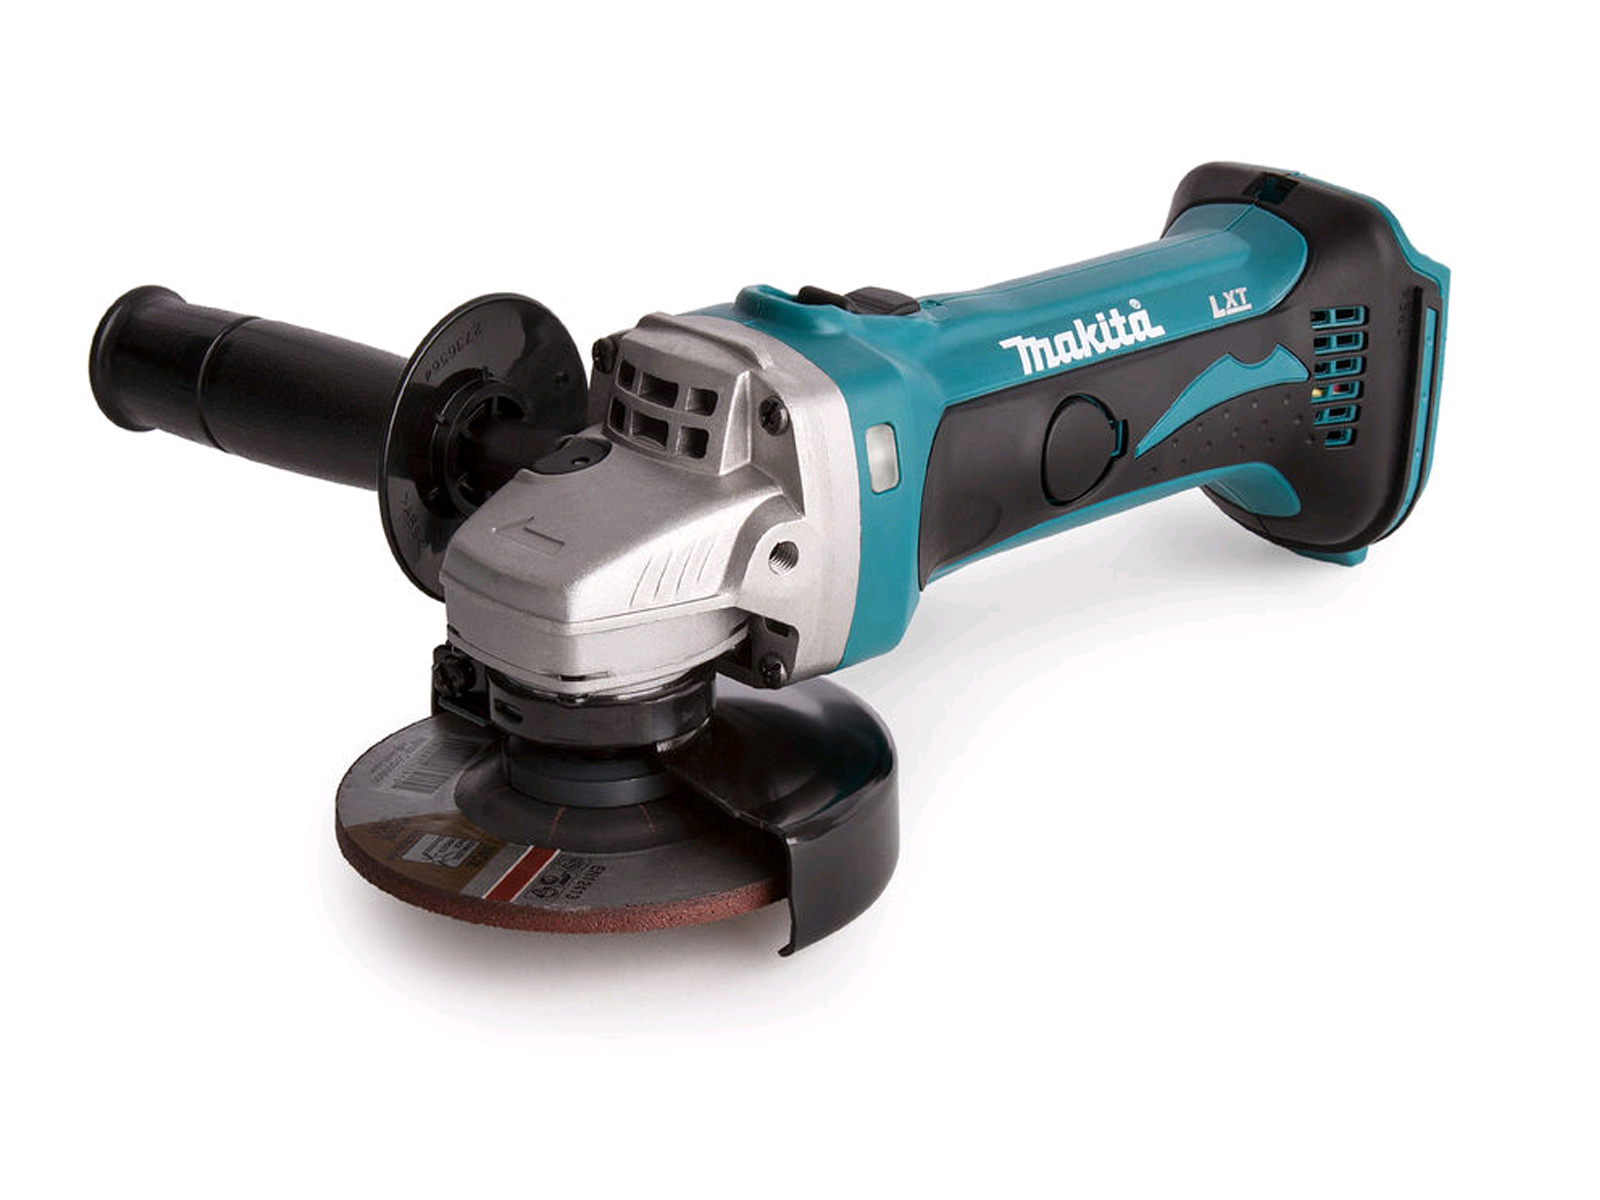 MAKITA 18V BRUSHED 115MM ANGLE GRINDER LXT - BODY ONLY